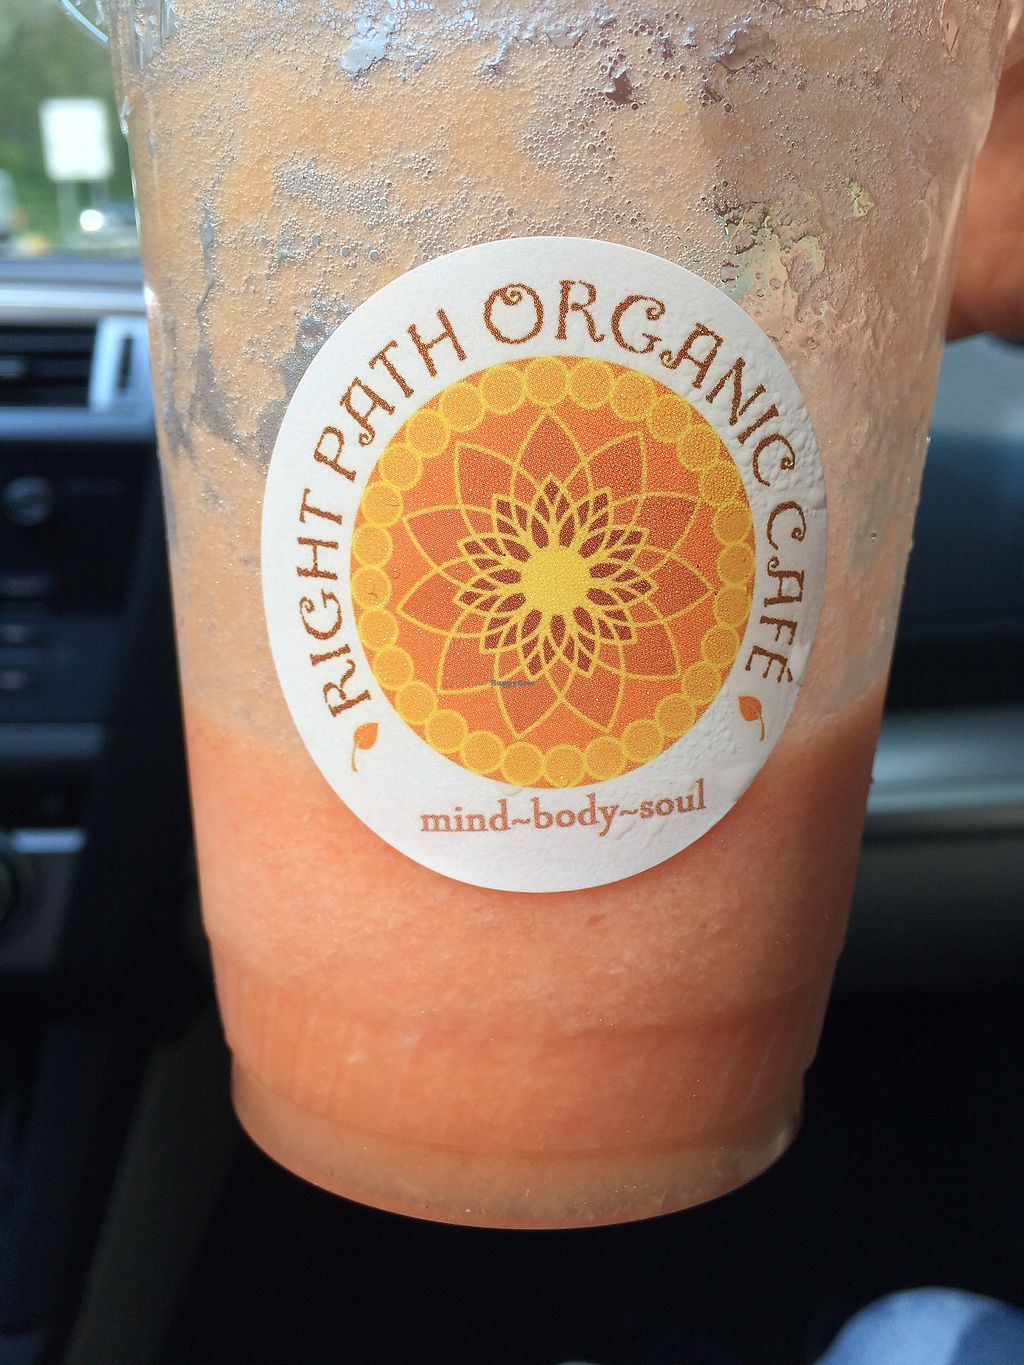 """Photo of Right Path Organic Cafe  by <a href=""""/members/profile/Indyk"""">Indyk</a> <br/>Watermelon, Cantaloupe and Ginger juice <br/> July 20, 2017  - <a href='/contact/abuse/image/65514/282518'>Report</a>"""